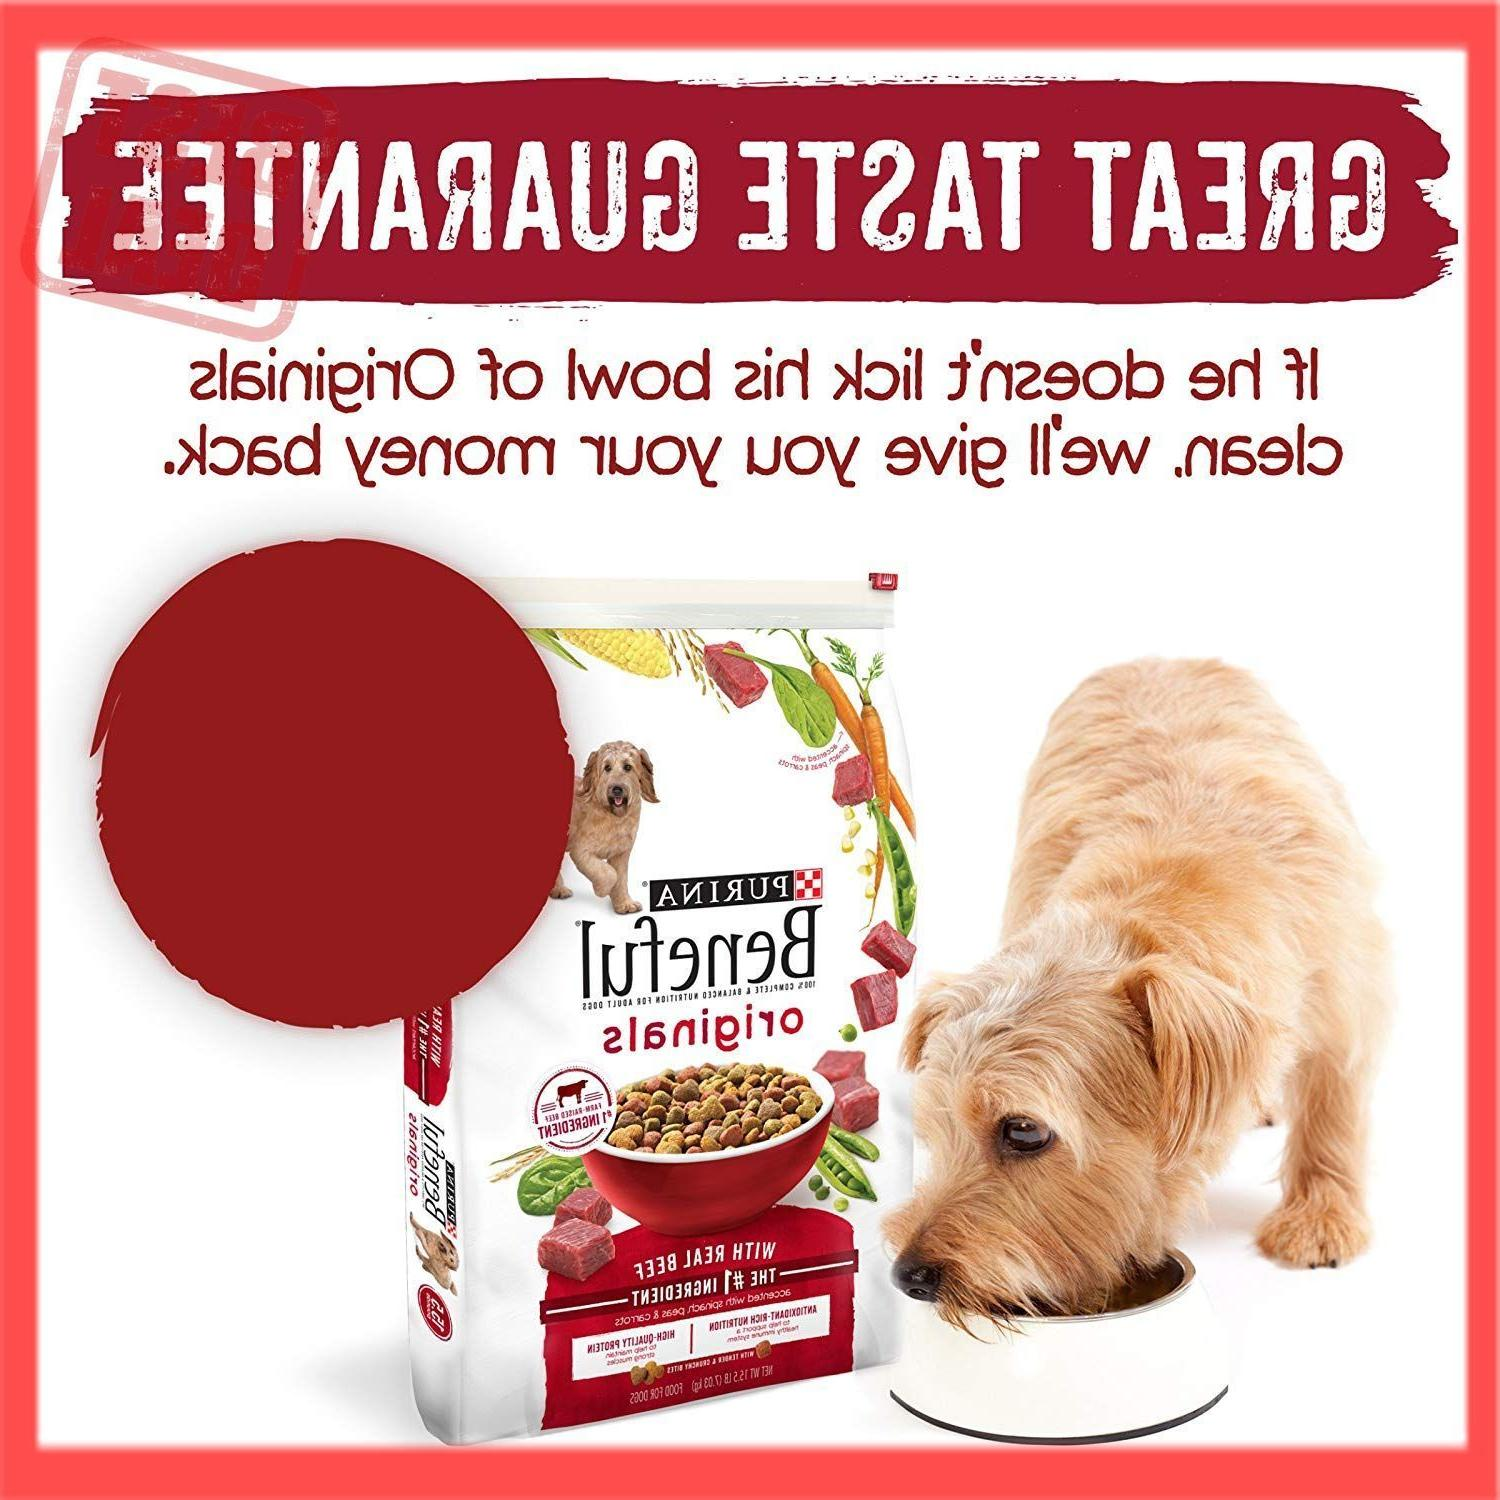 Purina Originals With Real Dry Dog Food 15.5 lb. Bag